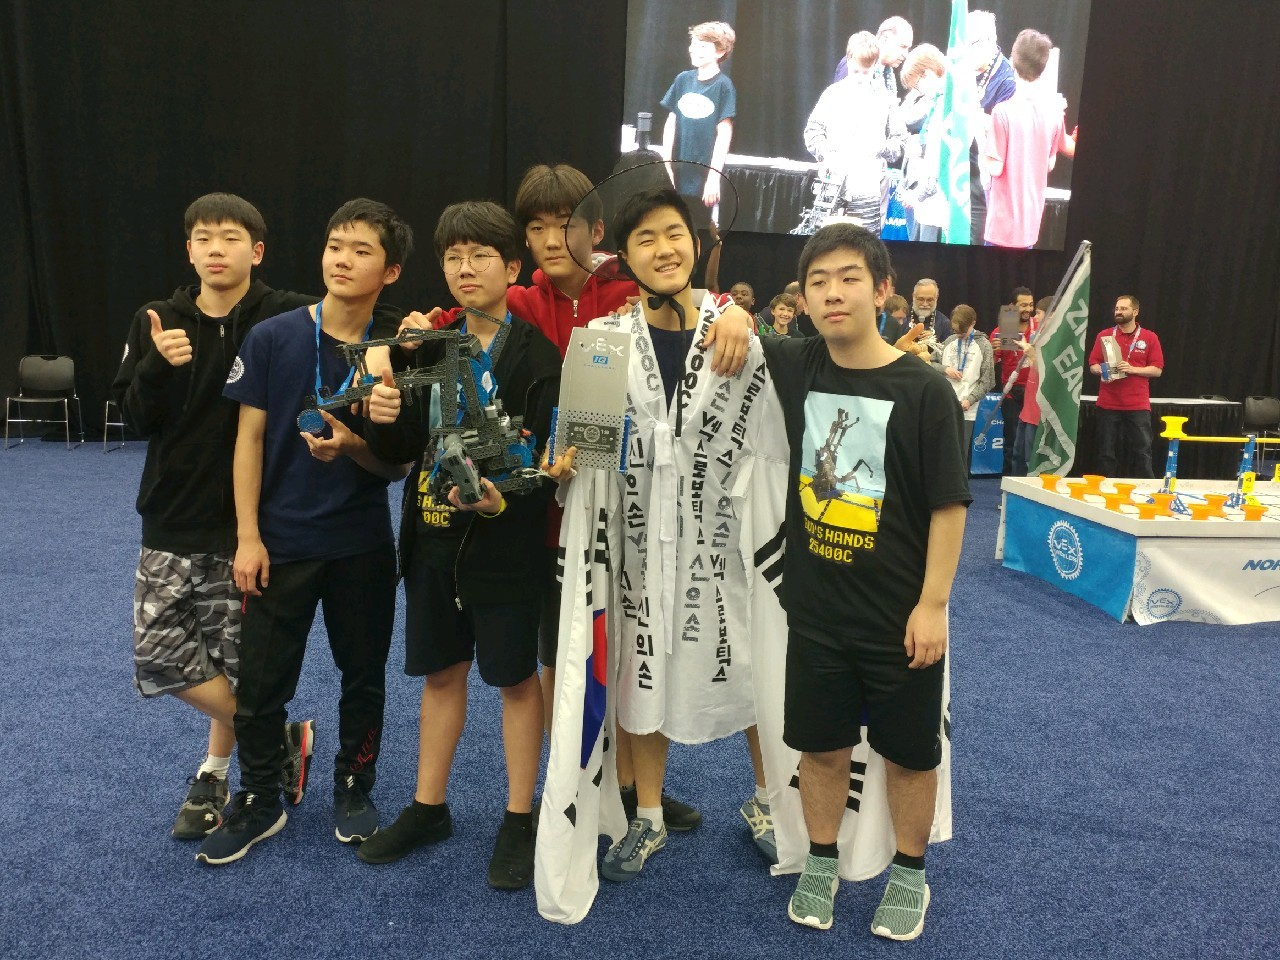 Dwight School Seoul robotics team members pose for pictures at the Vex Robotics World Championship in Kentucky, on May 1. (Dwight School Seoul)